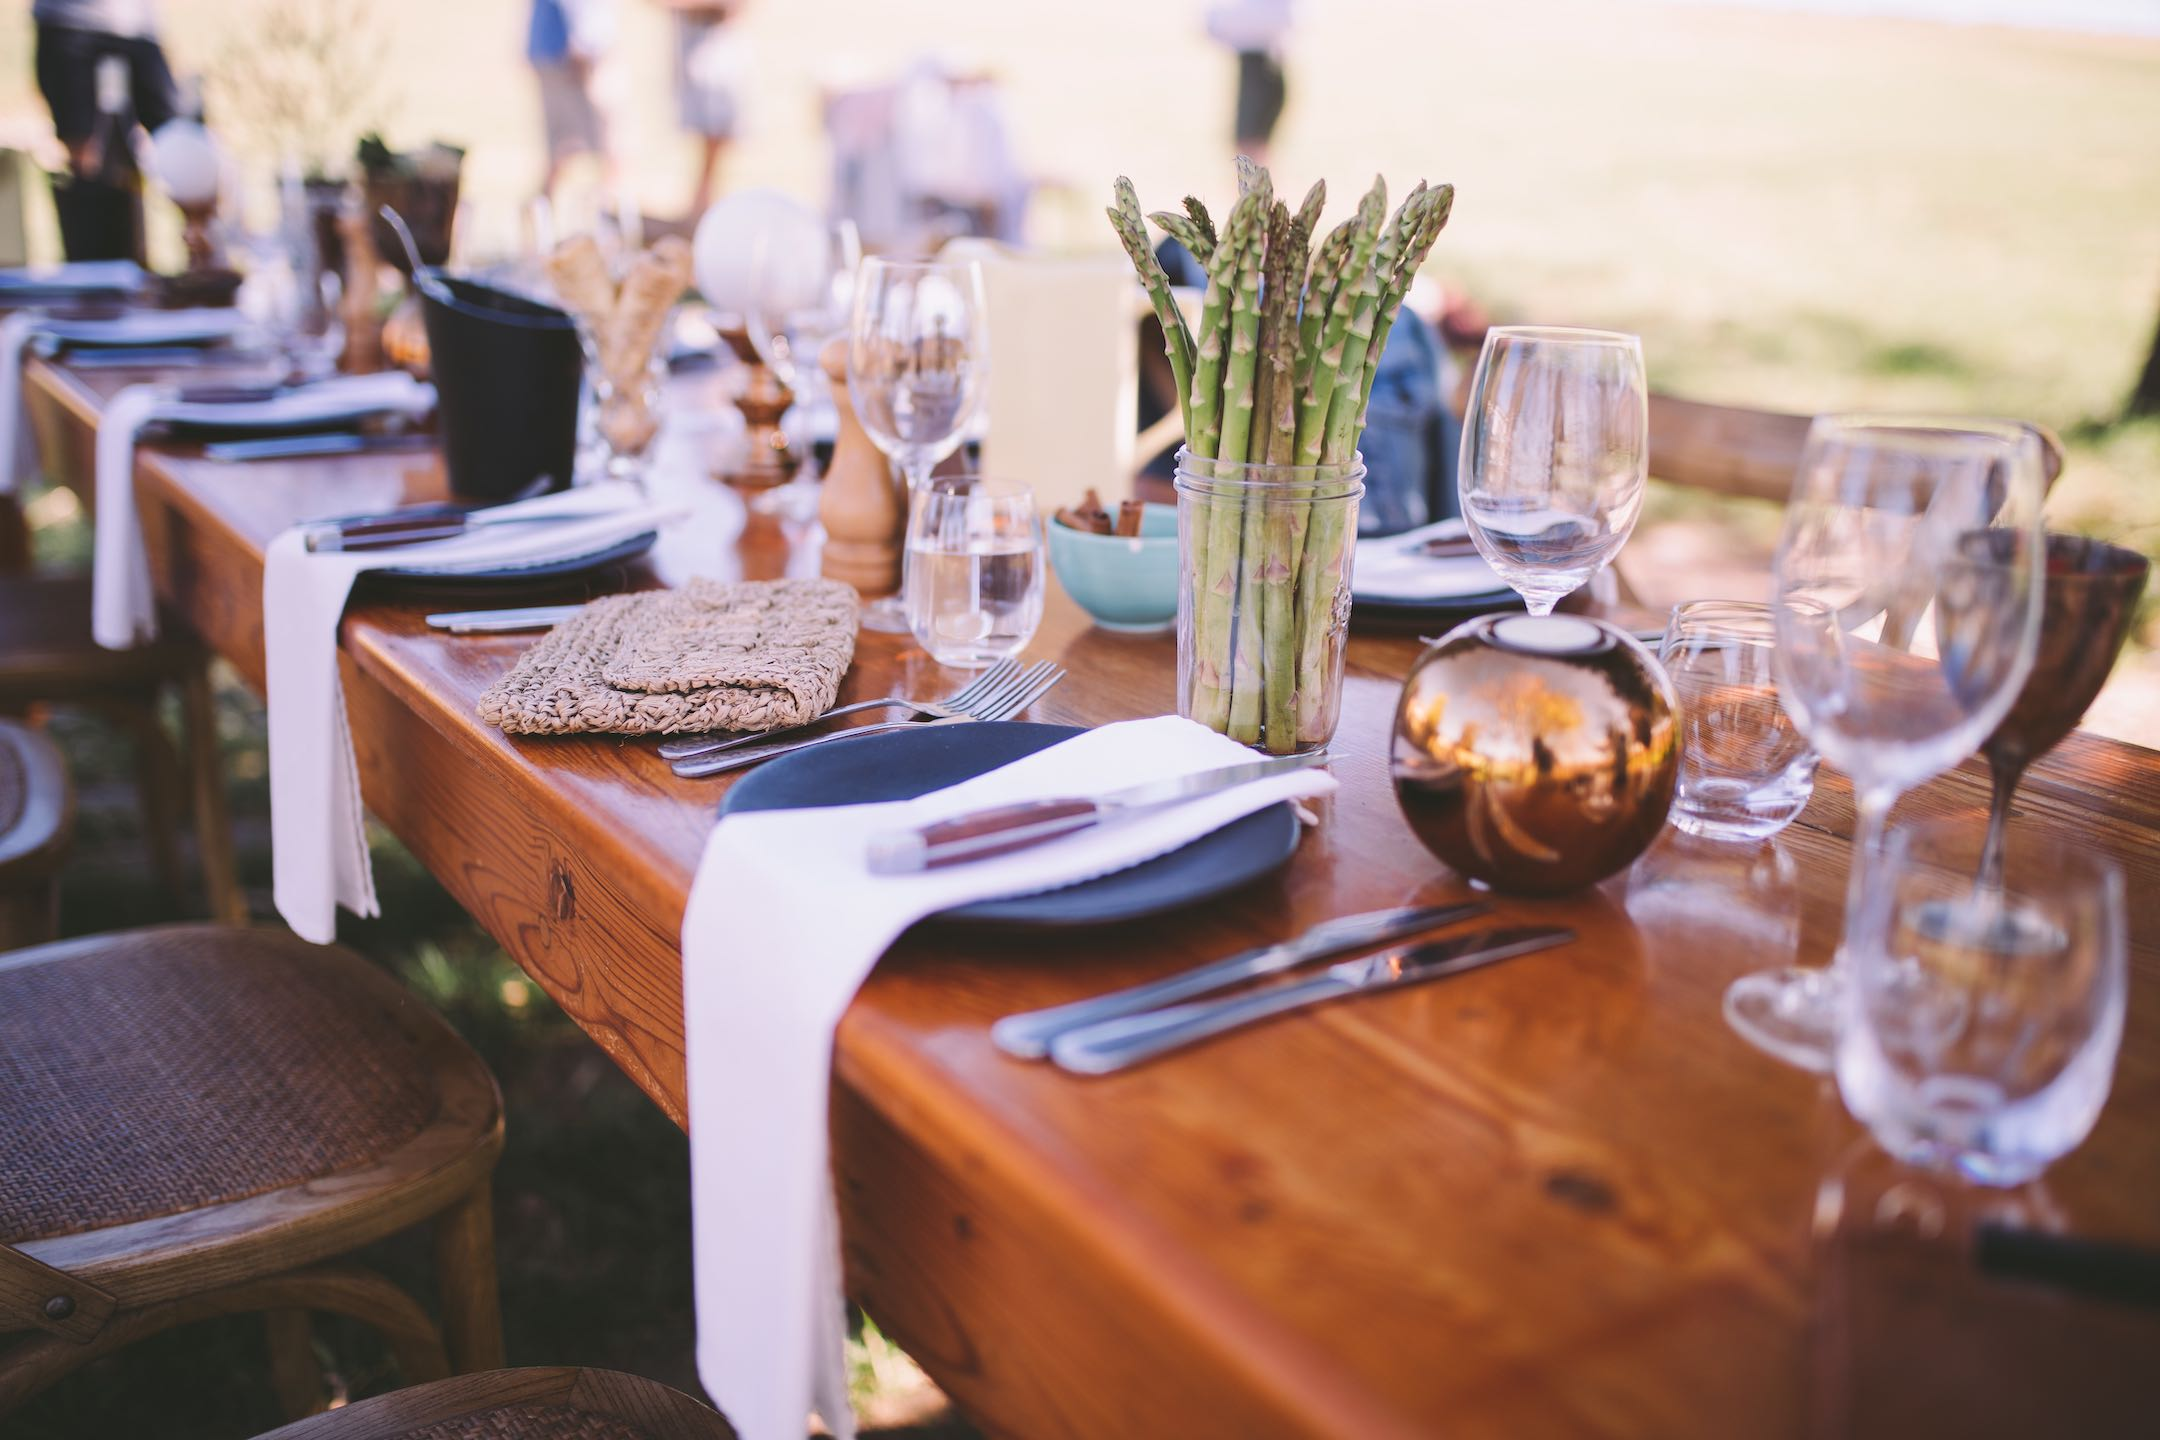 restaurant-dinner-festive-lunch-cutlery-table-wine-glass-wedding-no-people-event-wedding-reception_t20_kneo1p About Us